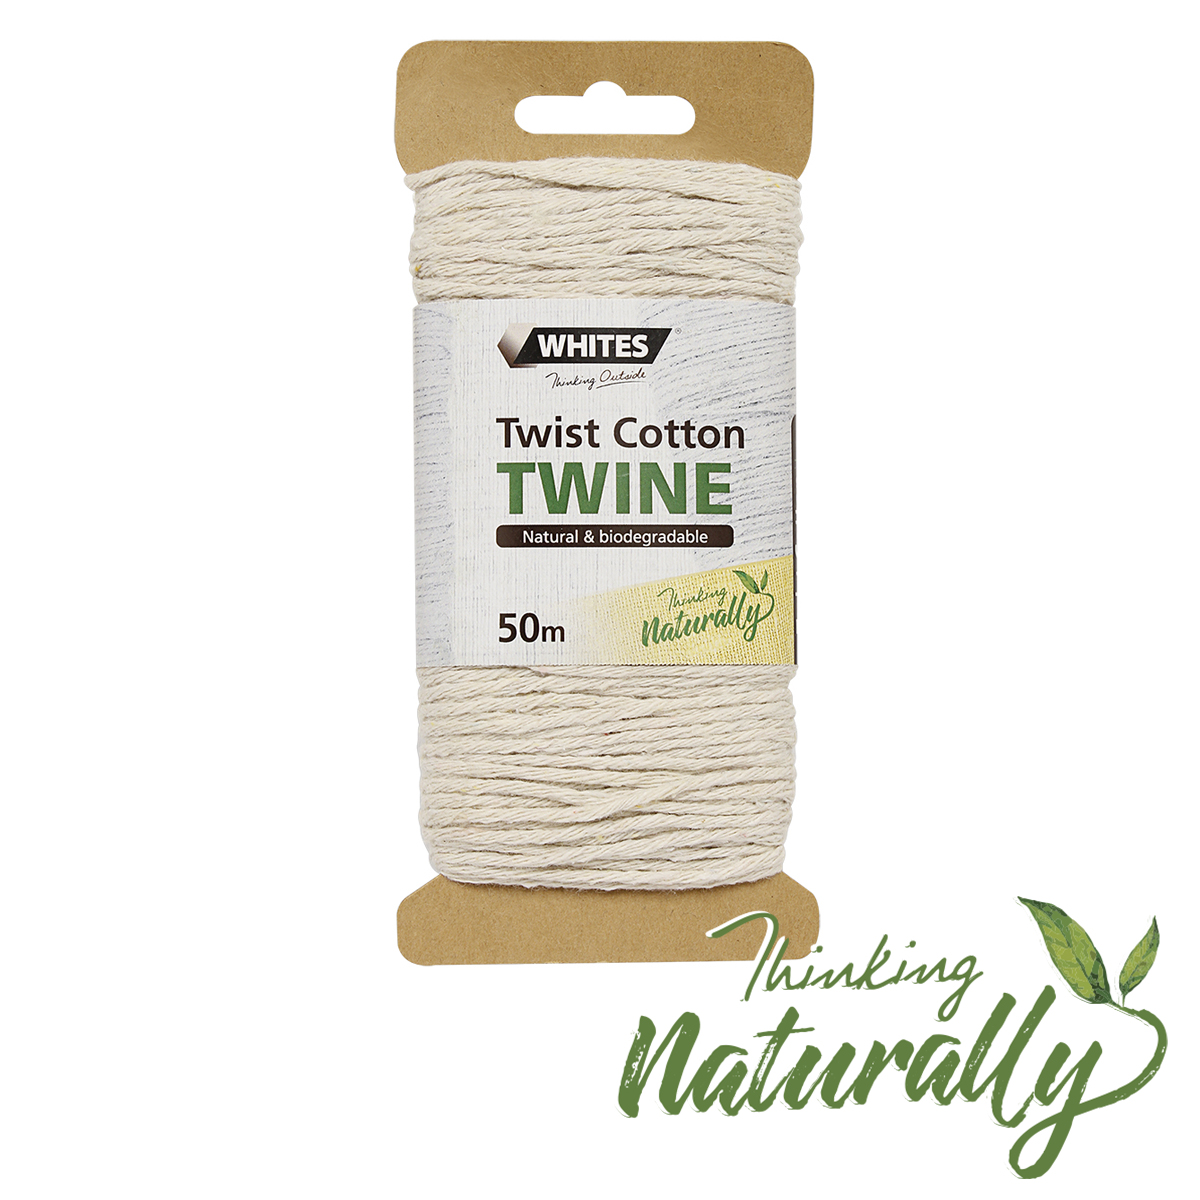 18744 Twist Cotton Twine 50m